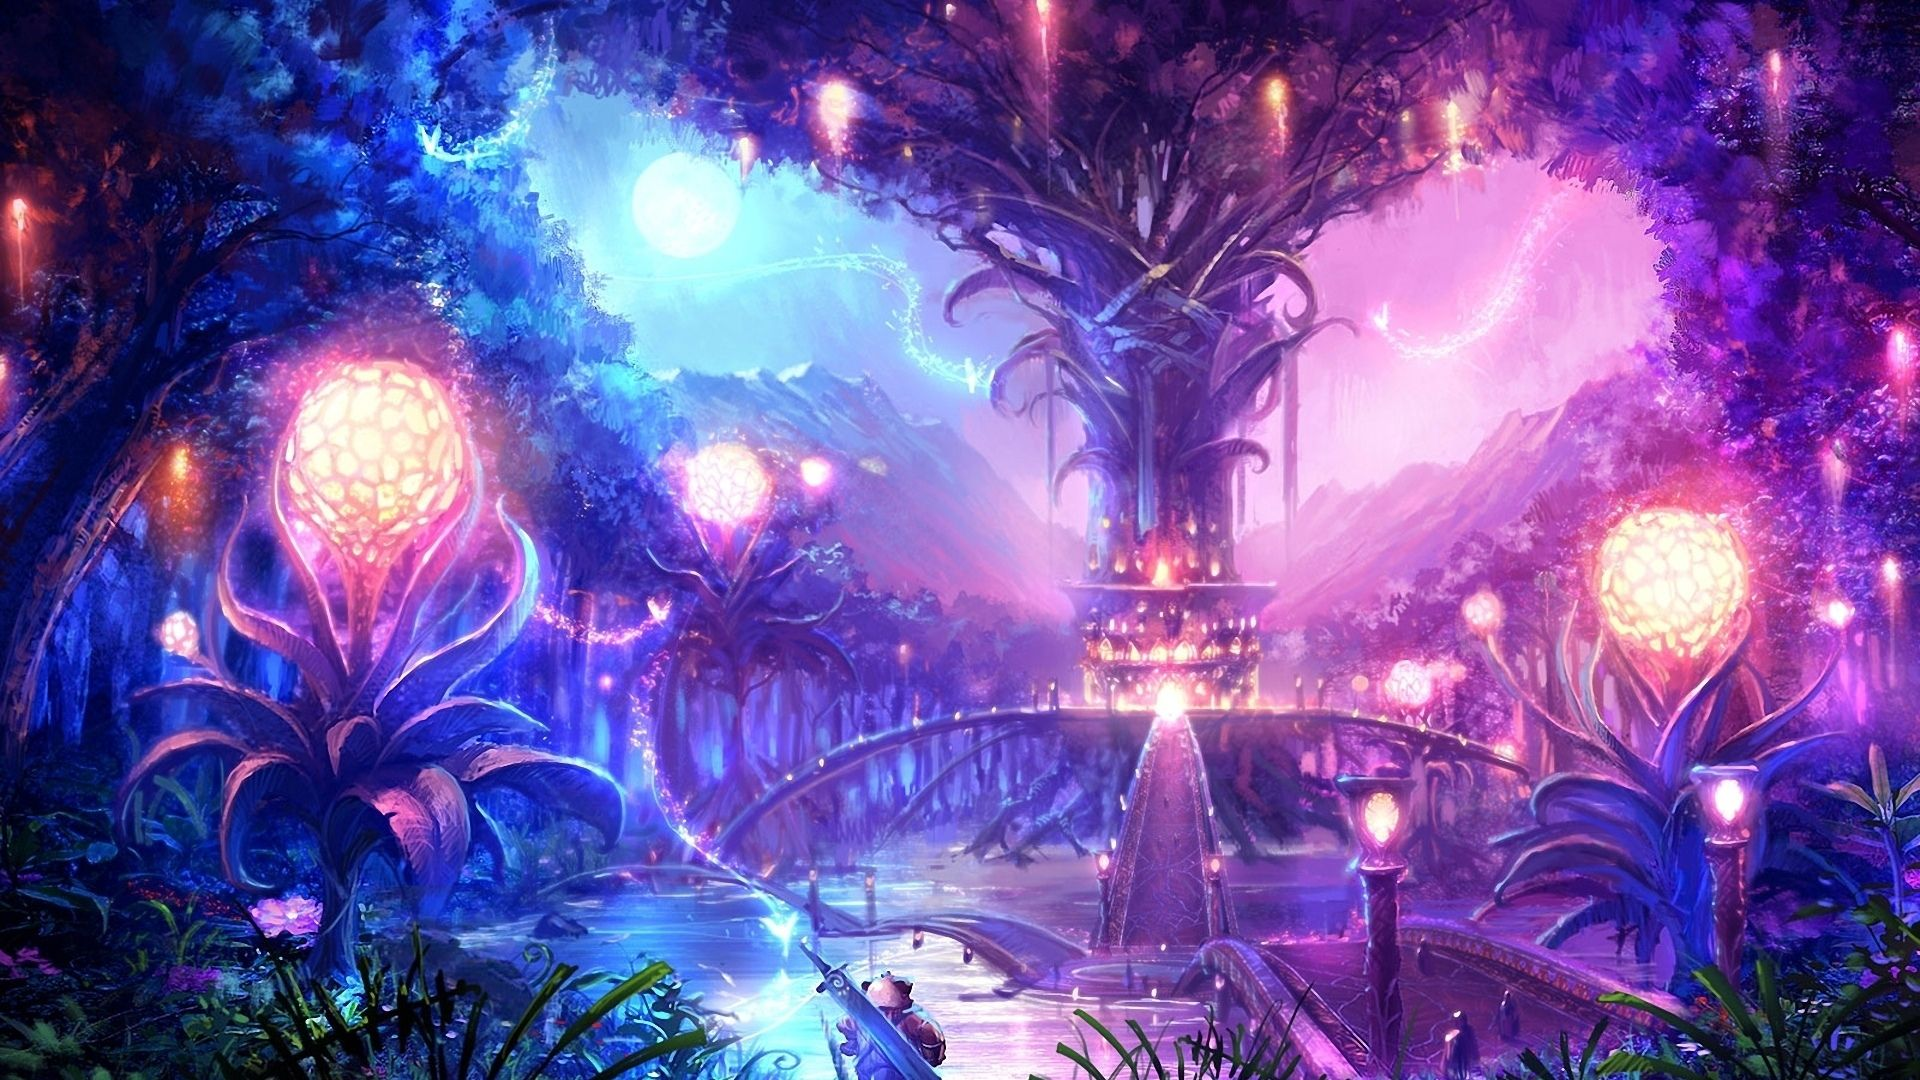 Tera online fantasy landscapes magic art | Fantasy Worlds for ...